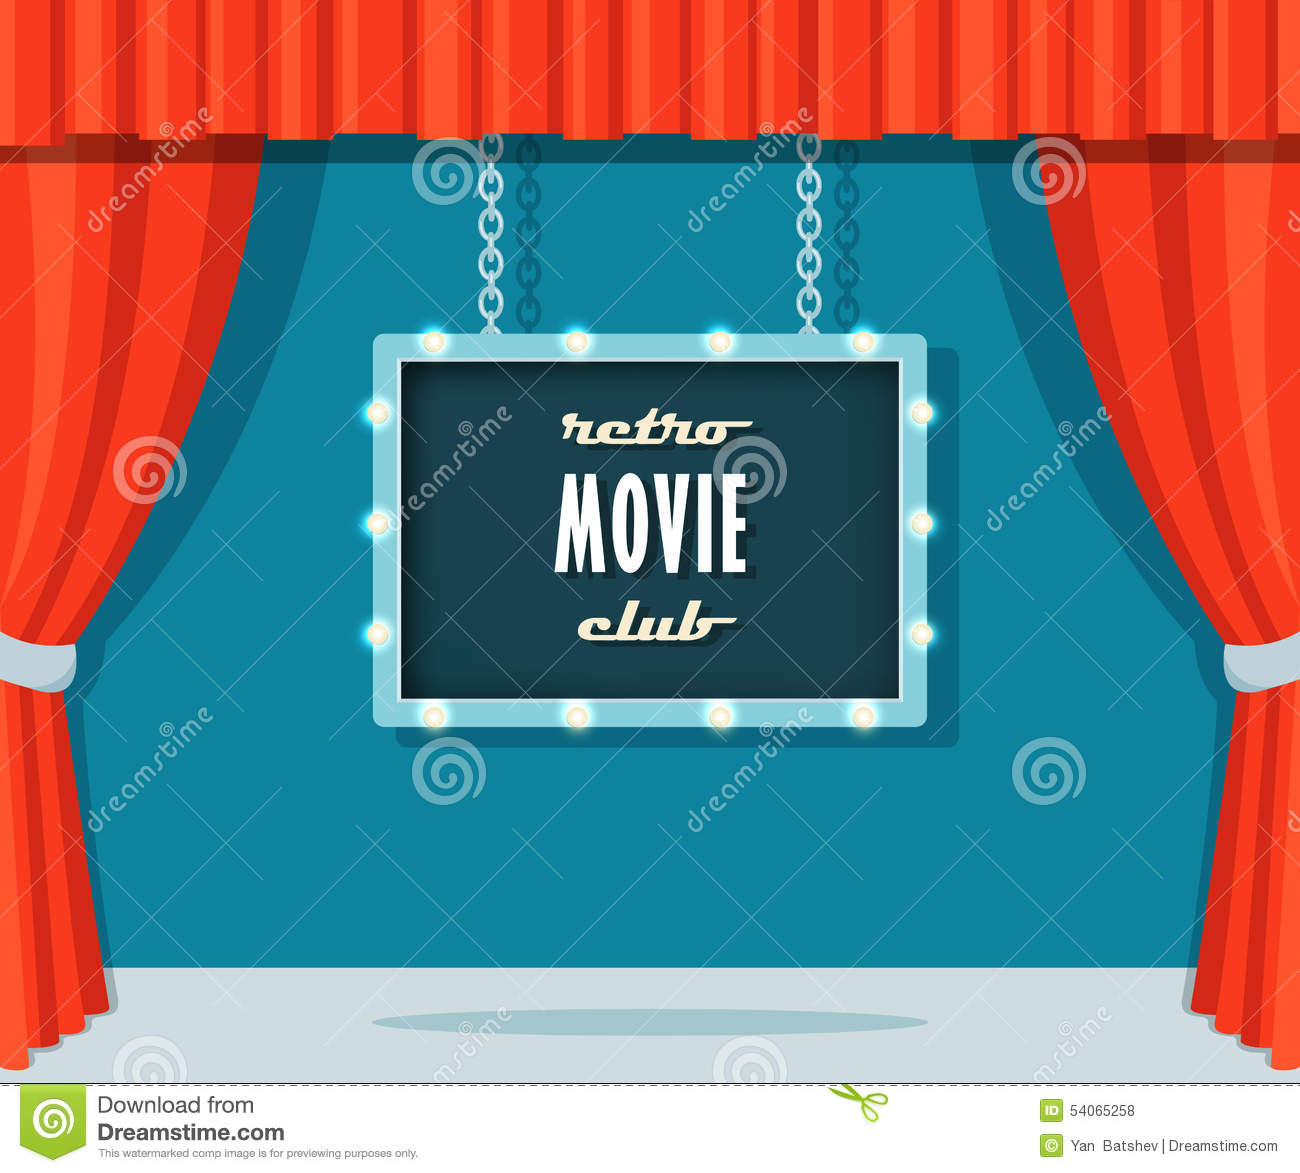 Velvet curtain club - Vintage Stage With Red Curtains And Marquee Sign Retro Movie Club